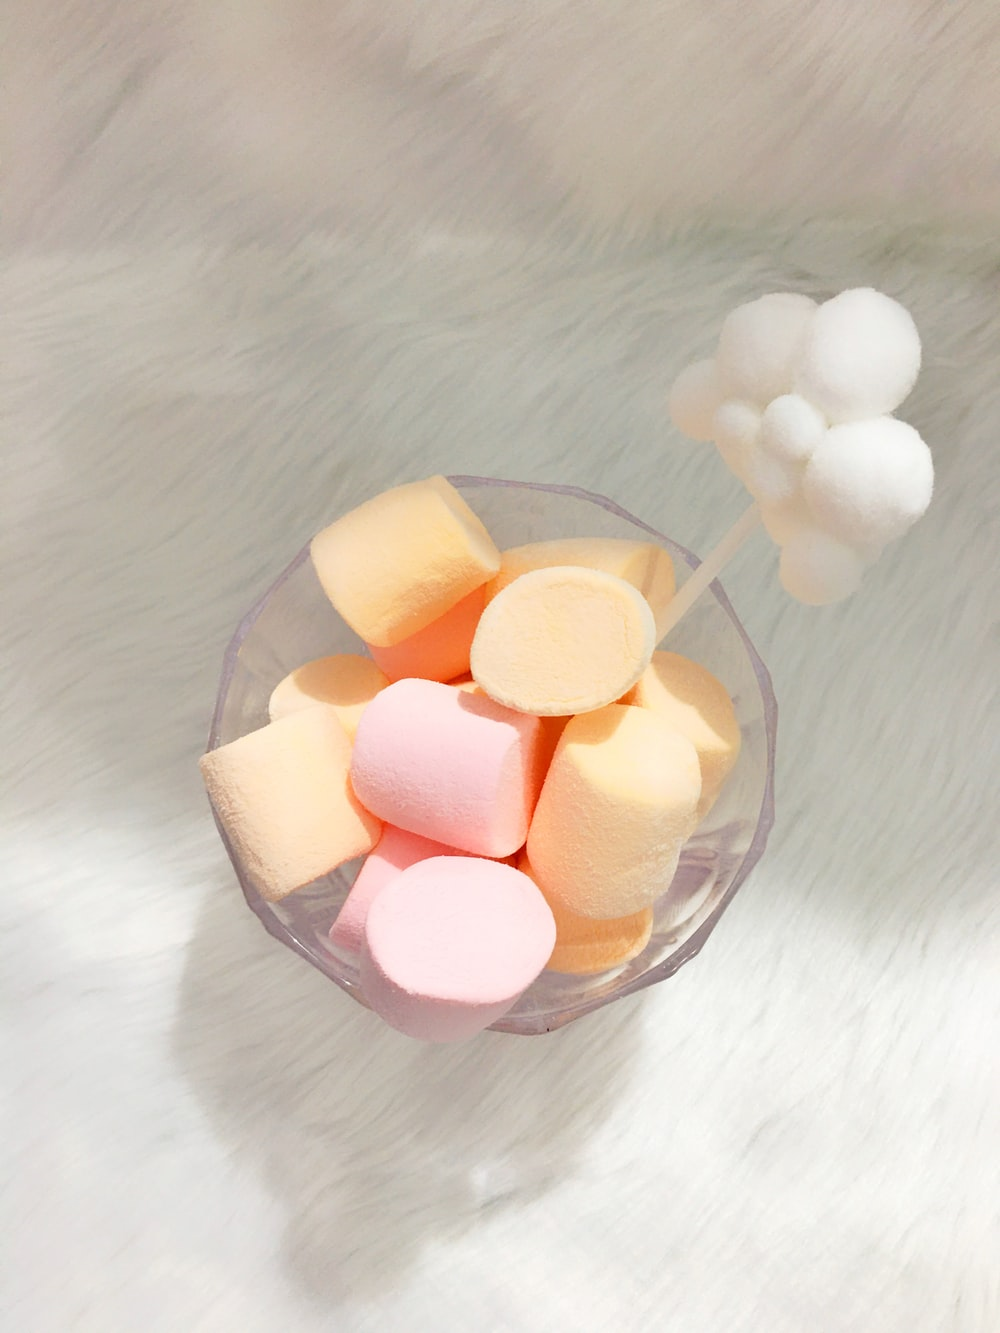 white heart shaped candies in clear glass bowl